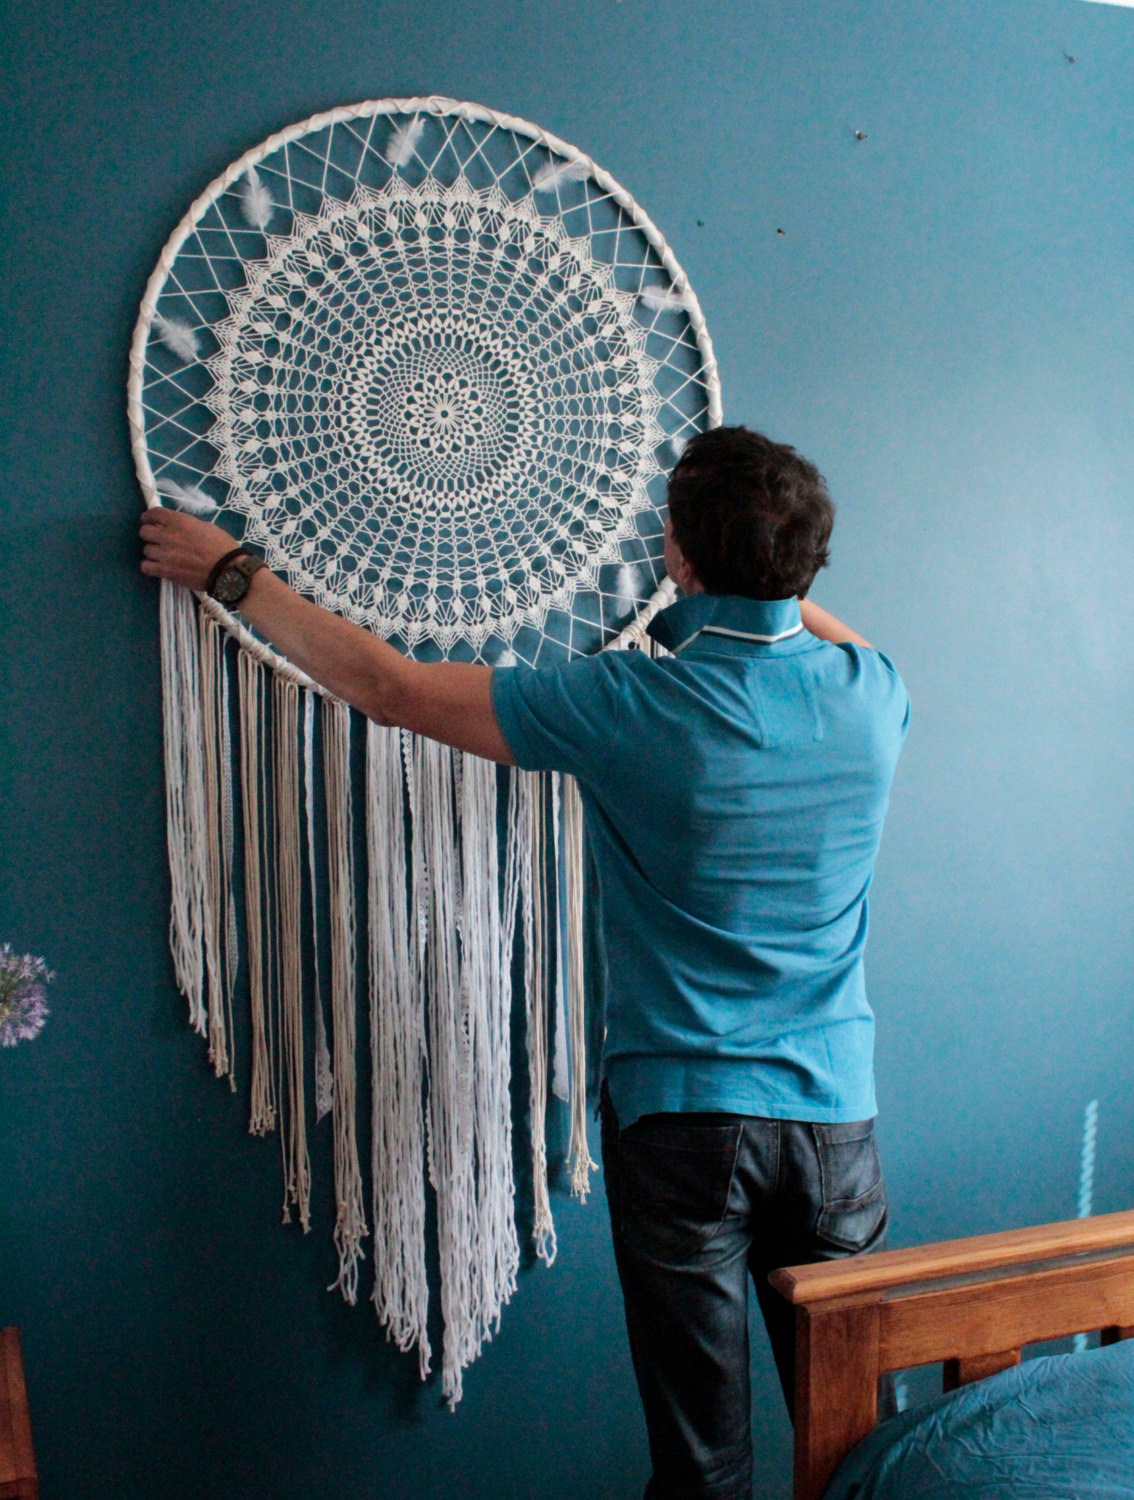 20 Creative Ways To Decorate Your Home With Unexpected ... on Creative Wall Decor  id=33184